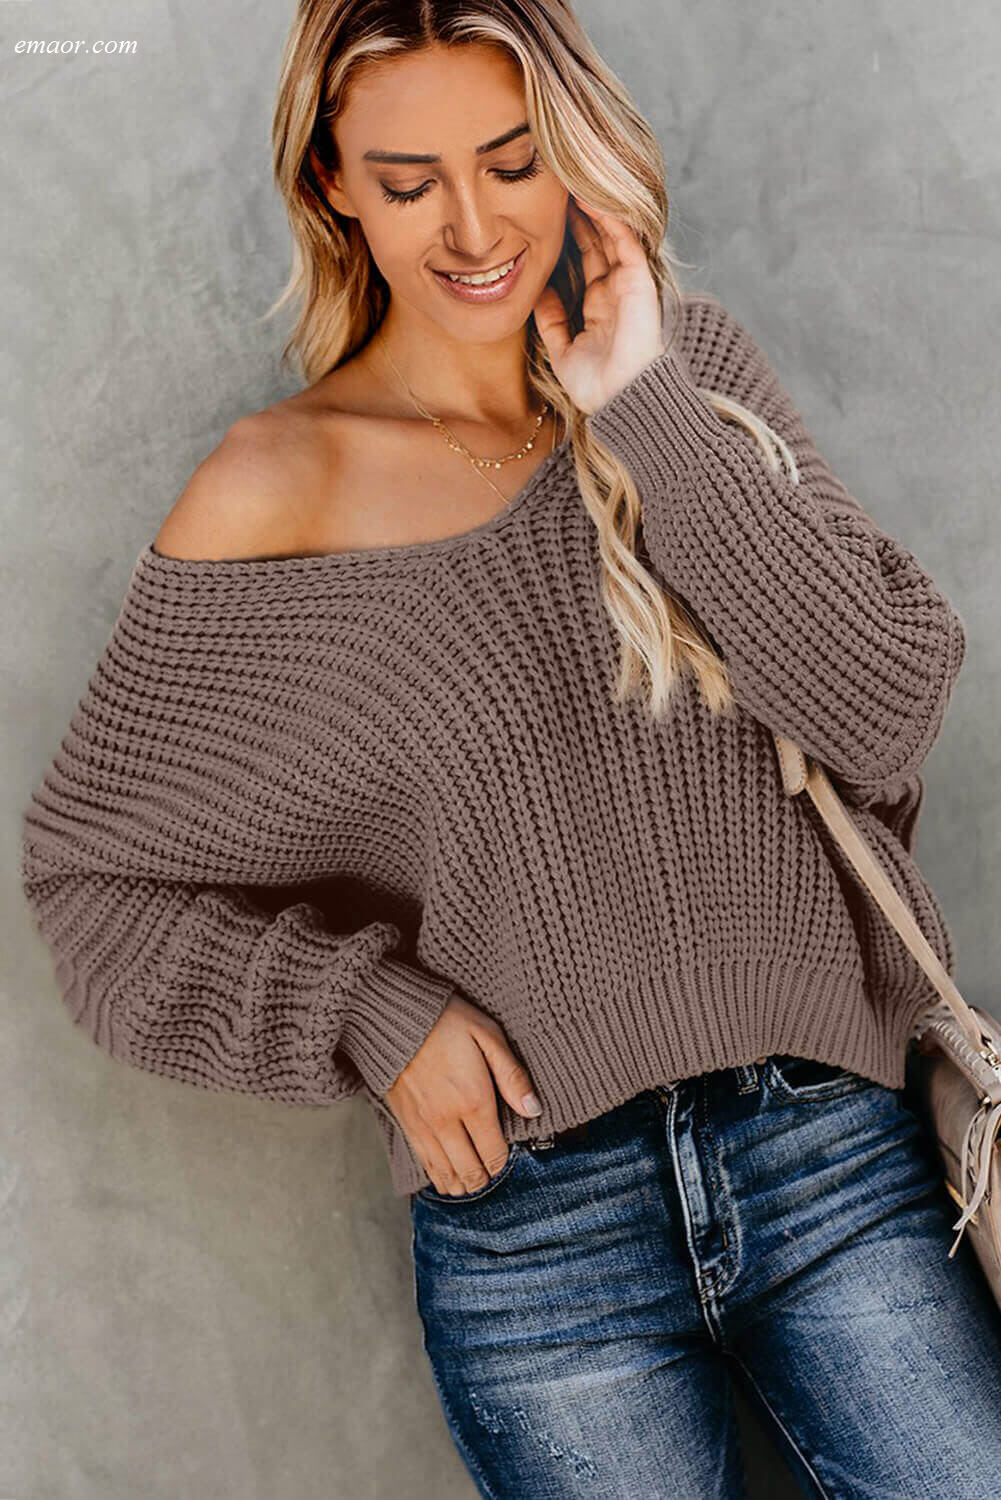 Wholesale Sweaters & Cardigans Haven Outerwear Amazon Knit V Neck Pullover Sweater Hunting Outerwear Reviews